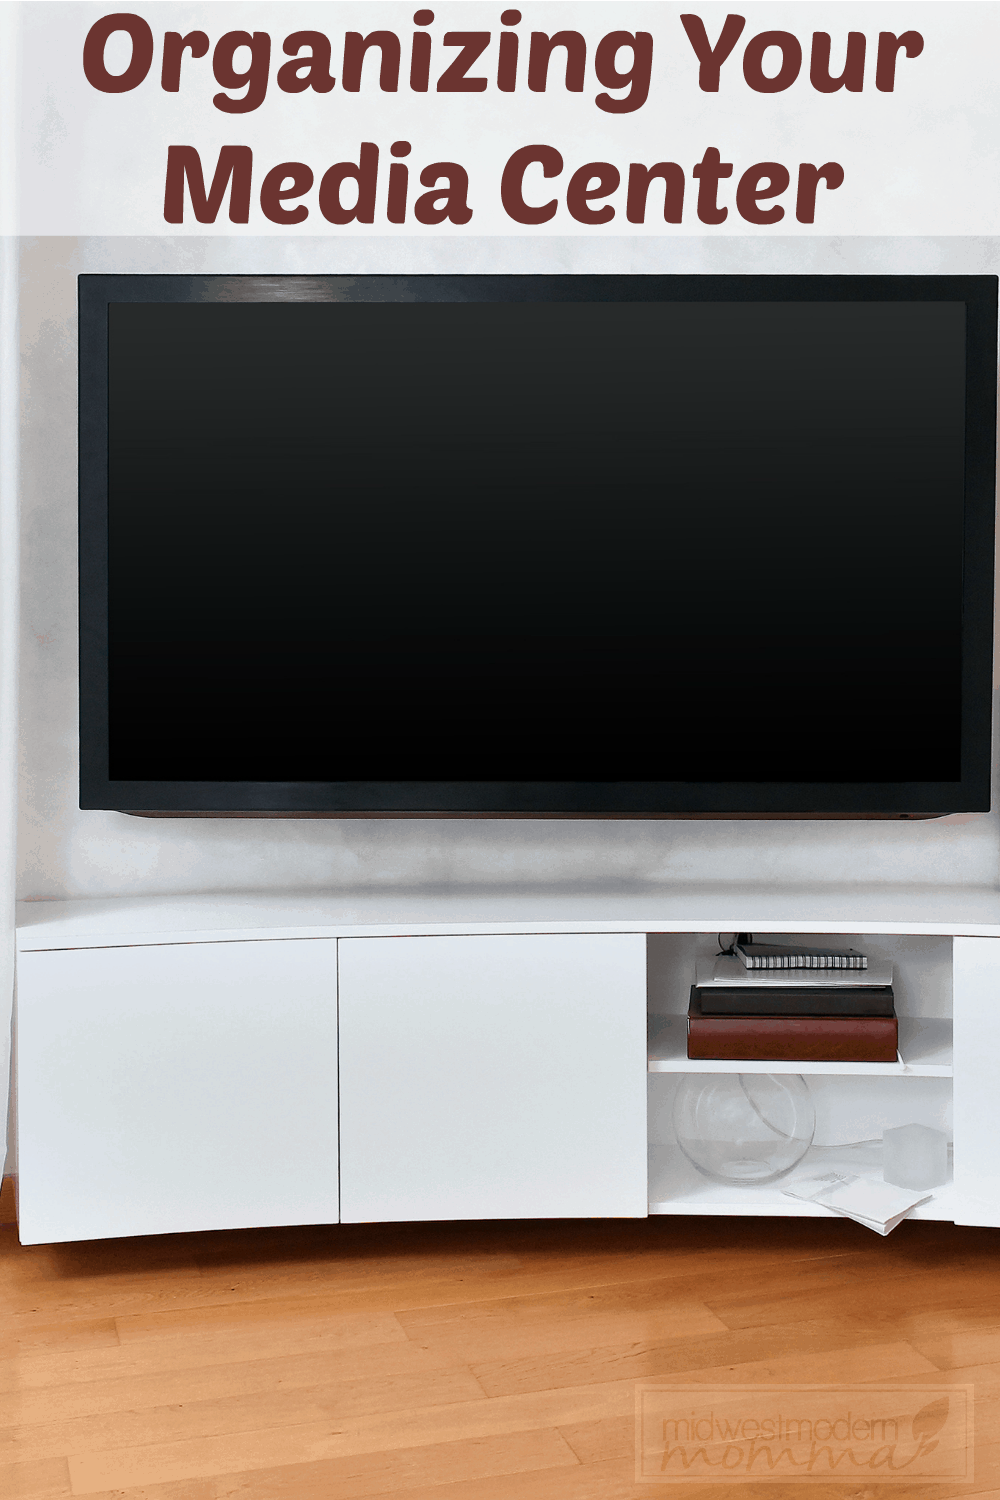 These tips for organizing your media center will help you to have a wonderful place in your home that is perfect for relaxing evenings in with the kids, or simply entertaining.